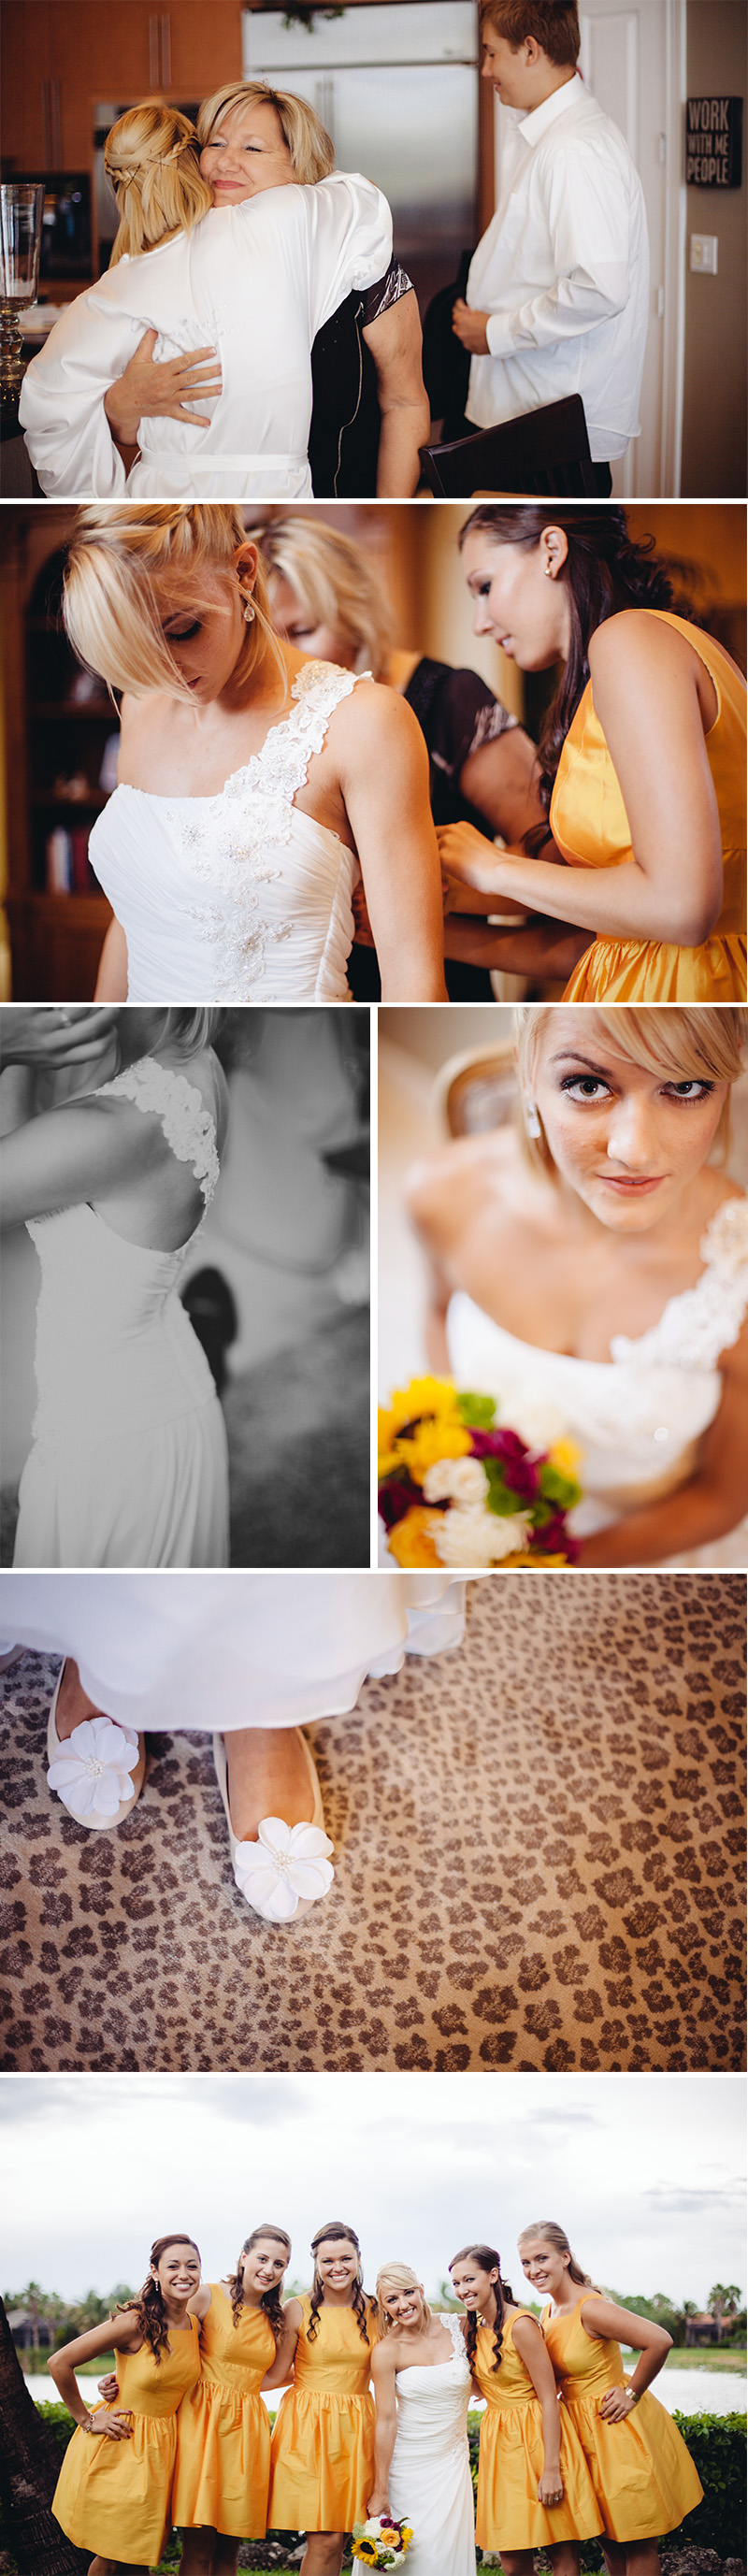 L&J_South Florida wedding2.jpg